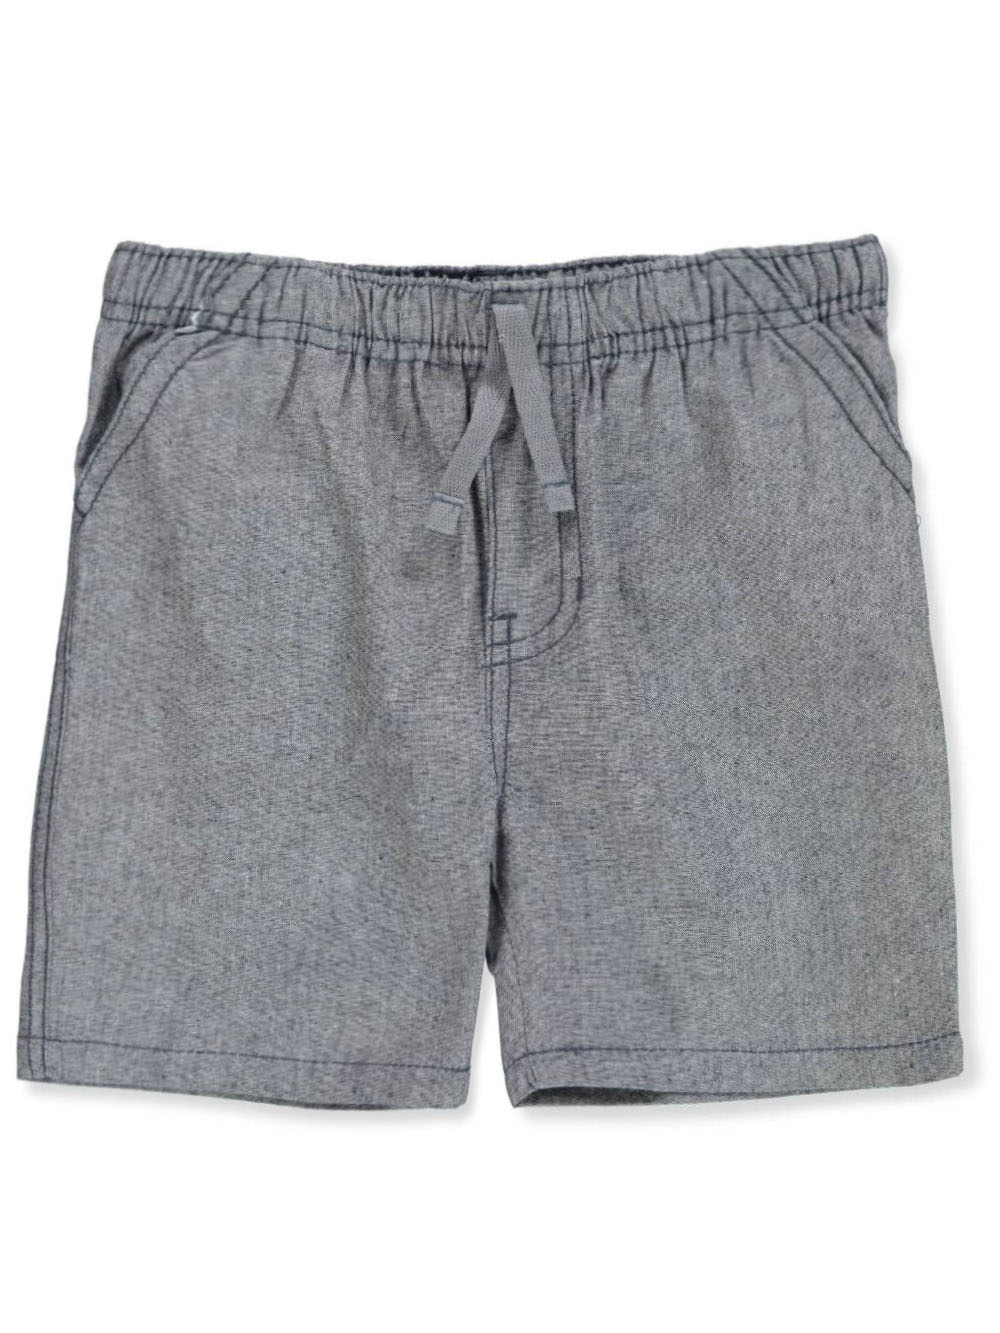 Heather Gray Shorts